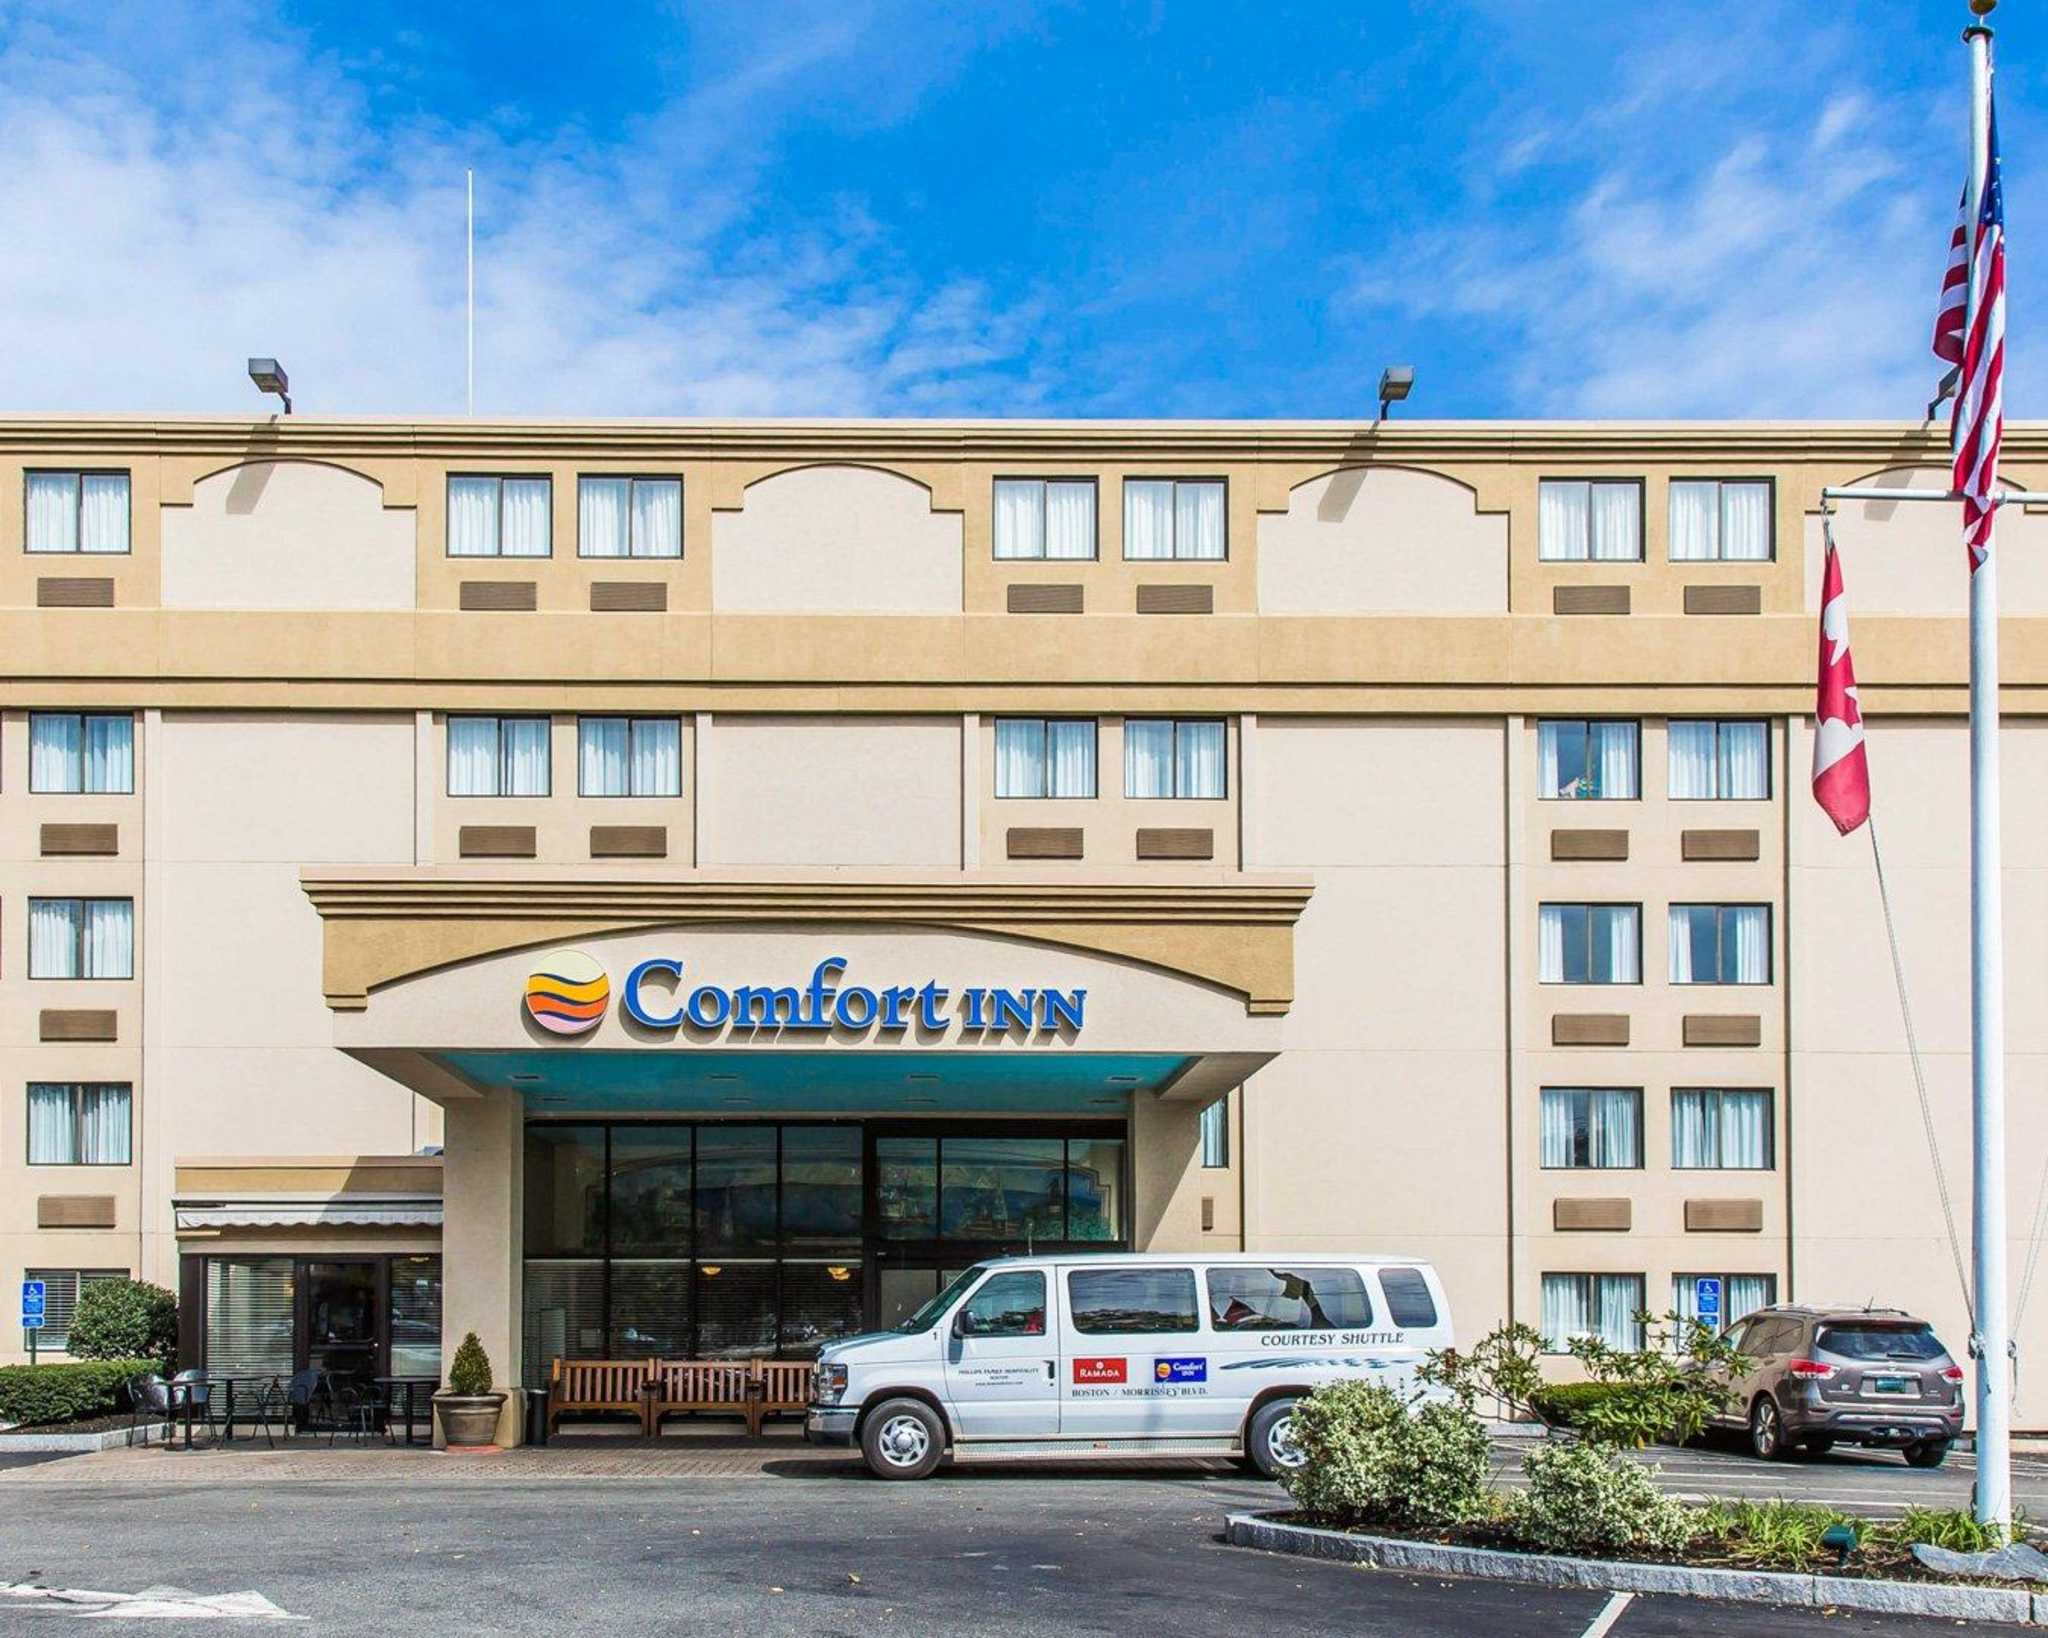 comfort inn coupons boston ma near me 8coupons. Black Bedroom Furniture Sets. Home Design Ideas